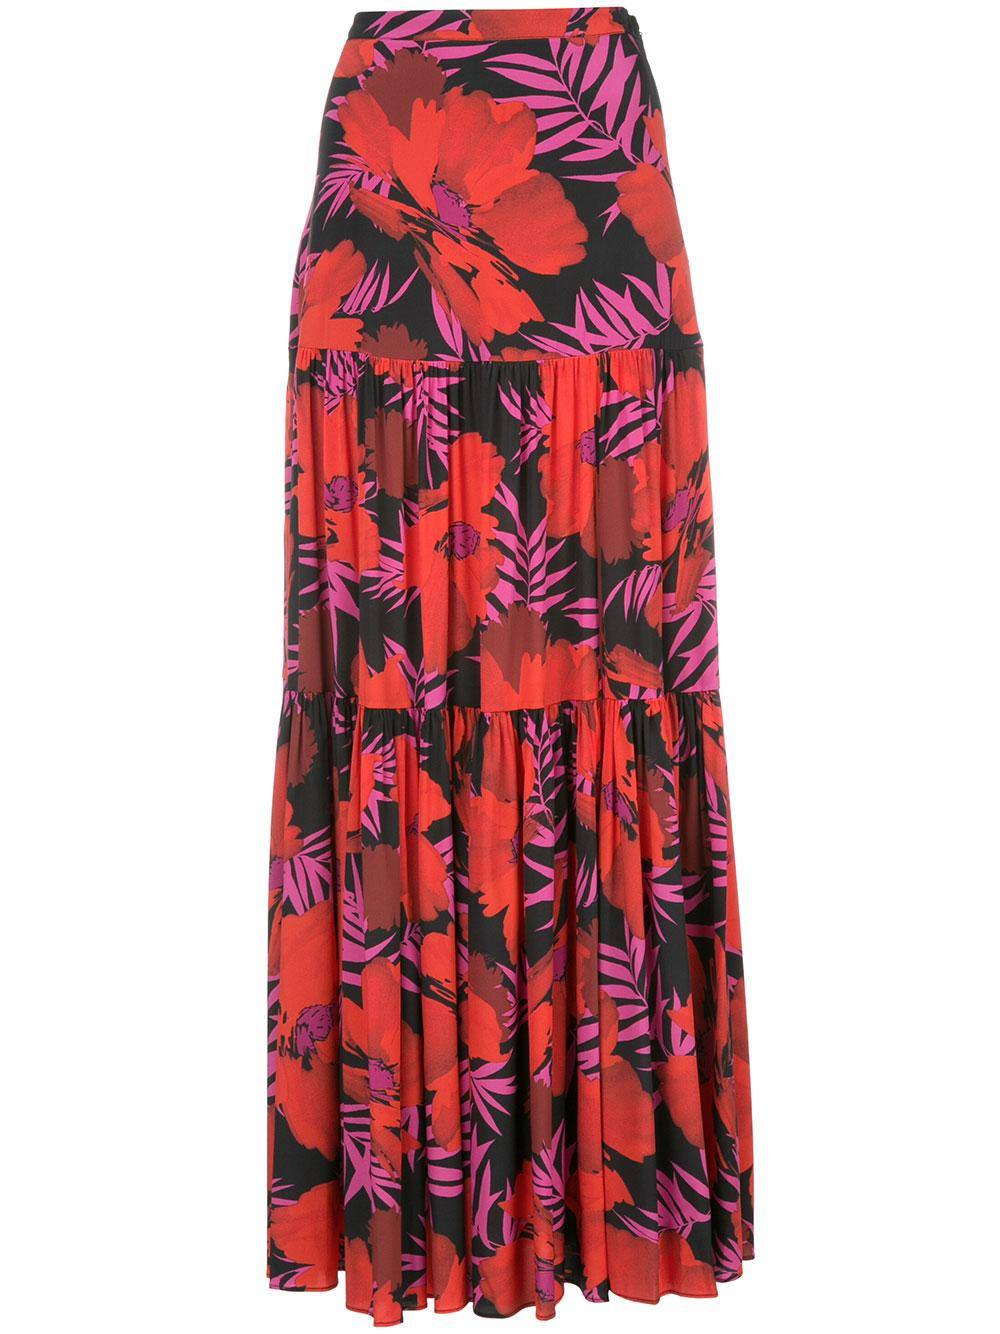 Serence Long Palm Print Tiered Skirt